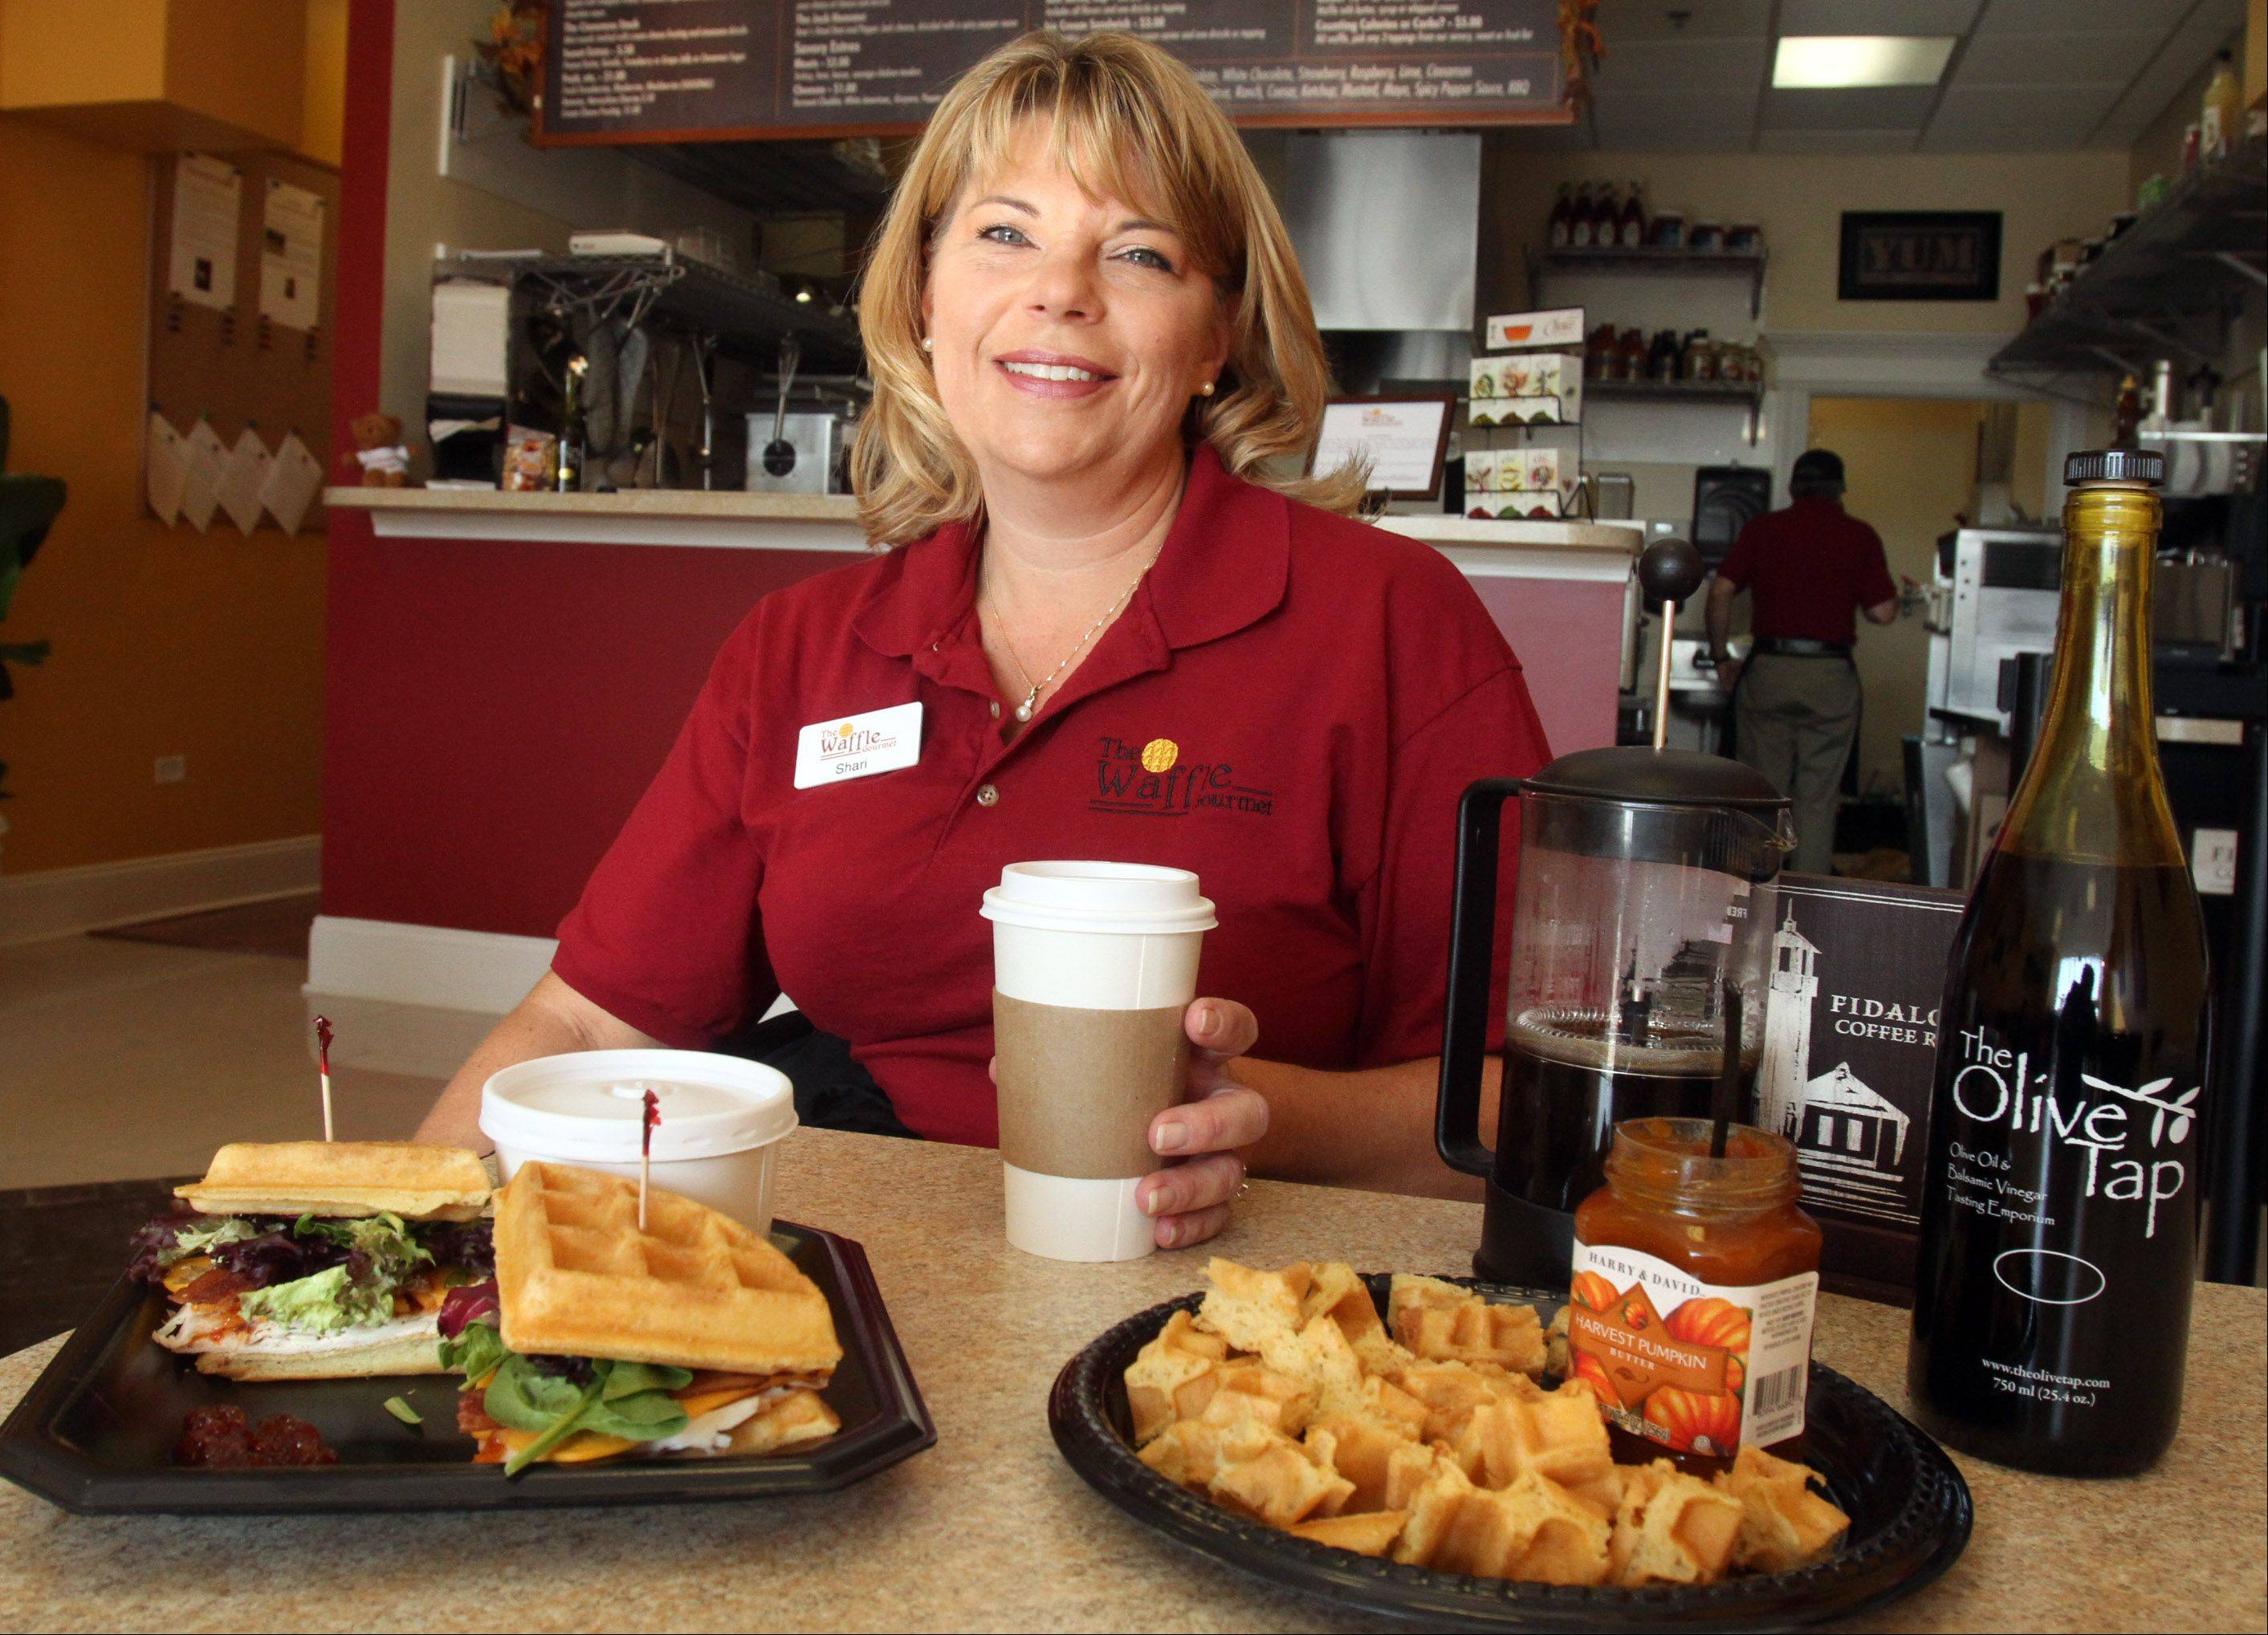 Shari Sorrells, owner of The Waffle Gourmet at Deer Park Town Center, serves an array of sandwiches including the waffle turkey, bacon and cheddar sandwich and a sample that she keeps at the counter.